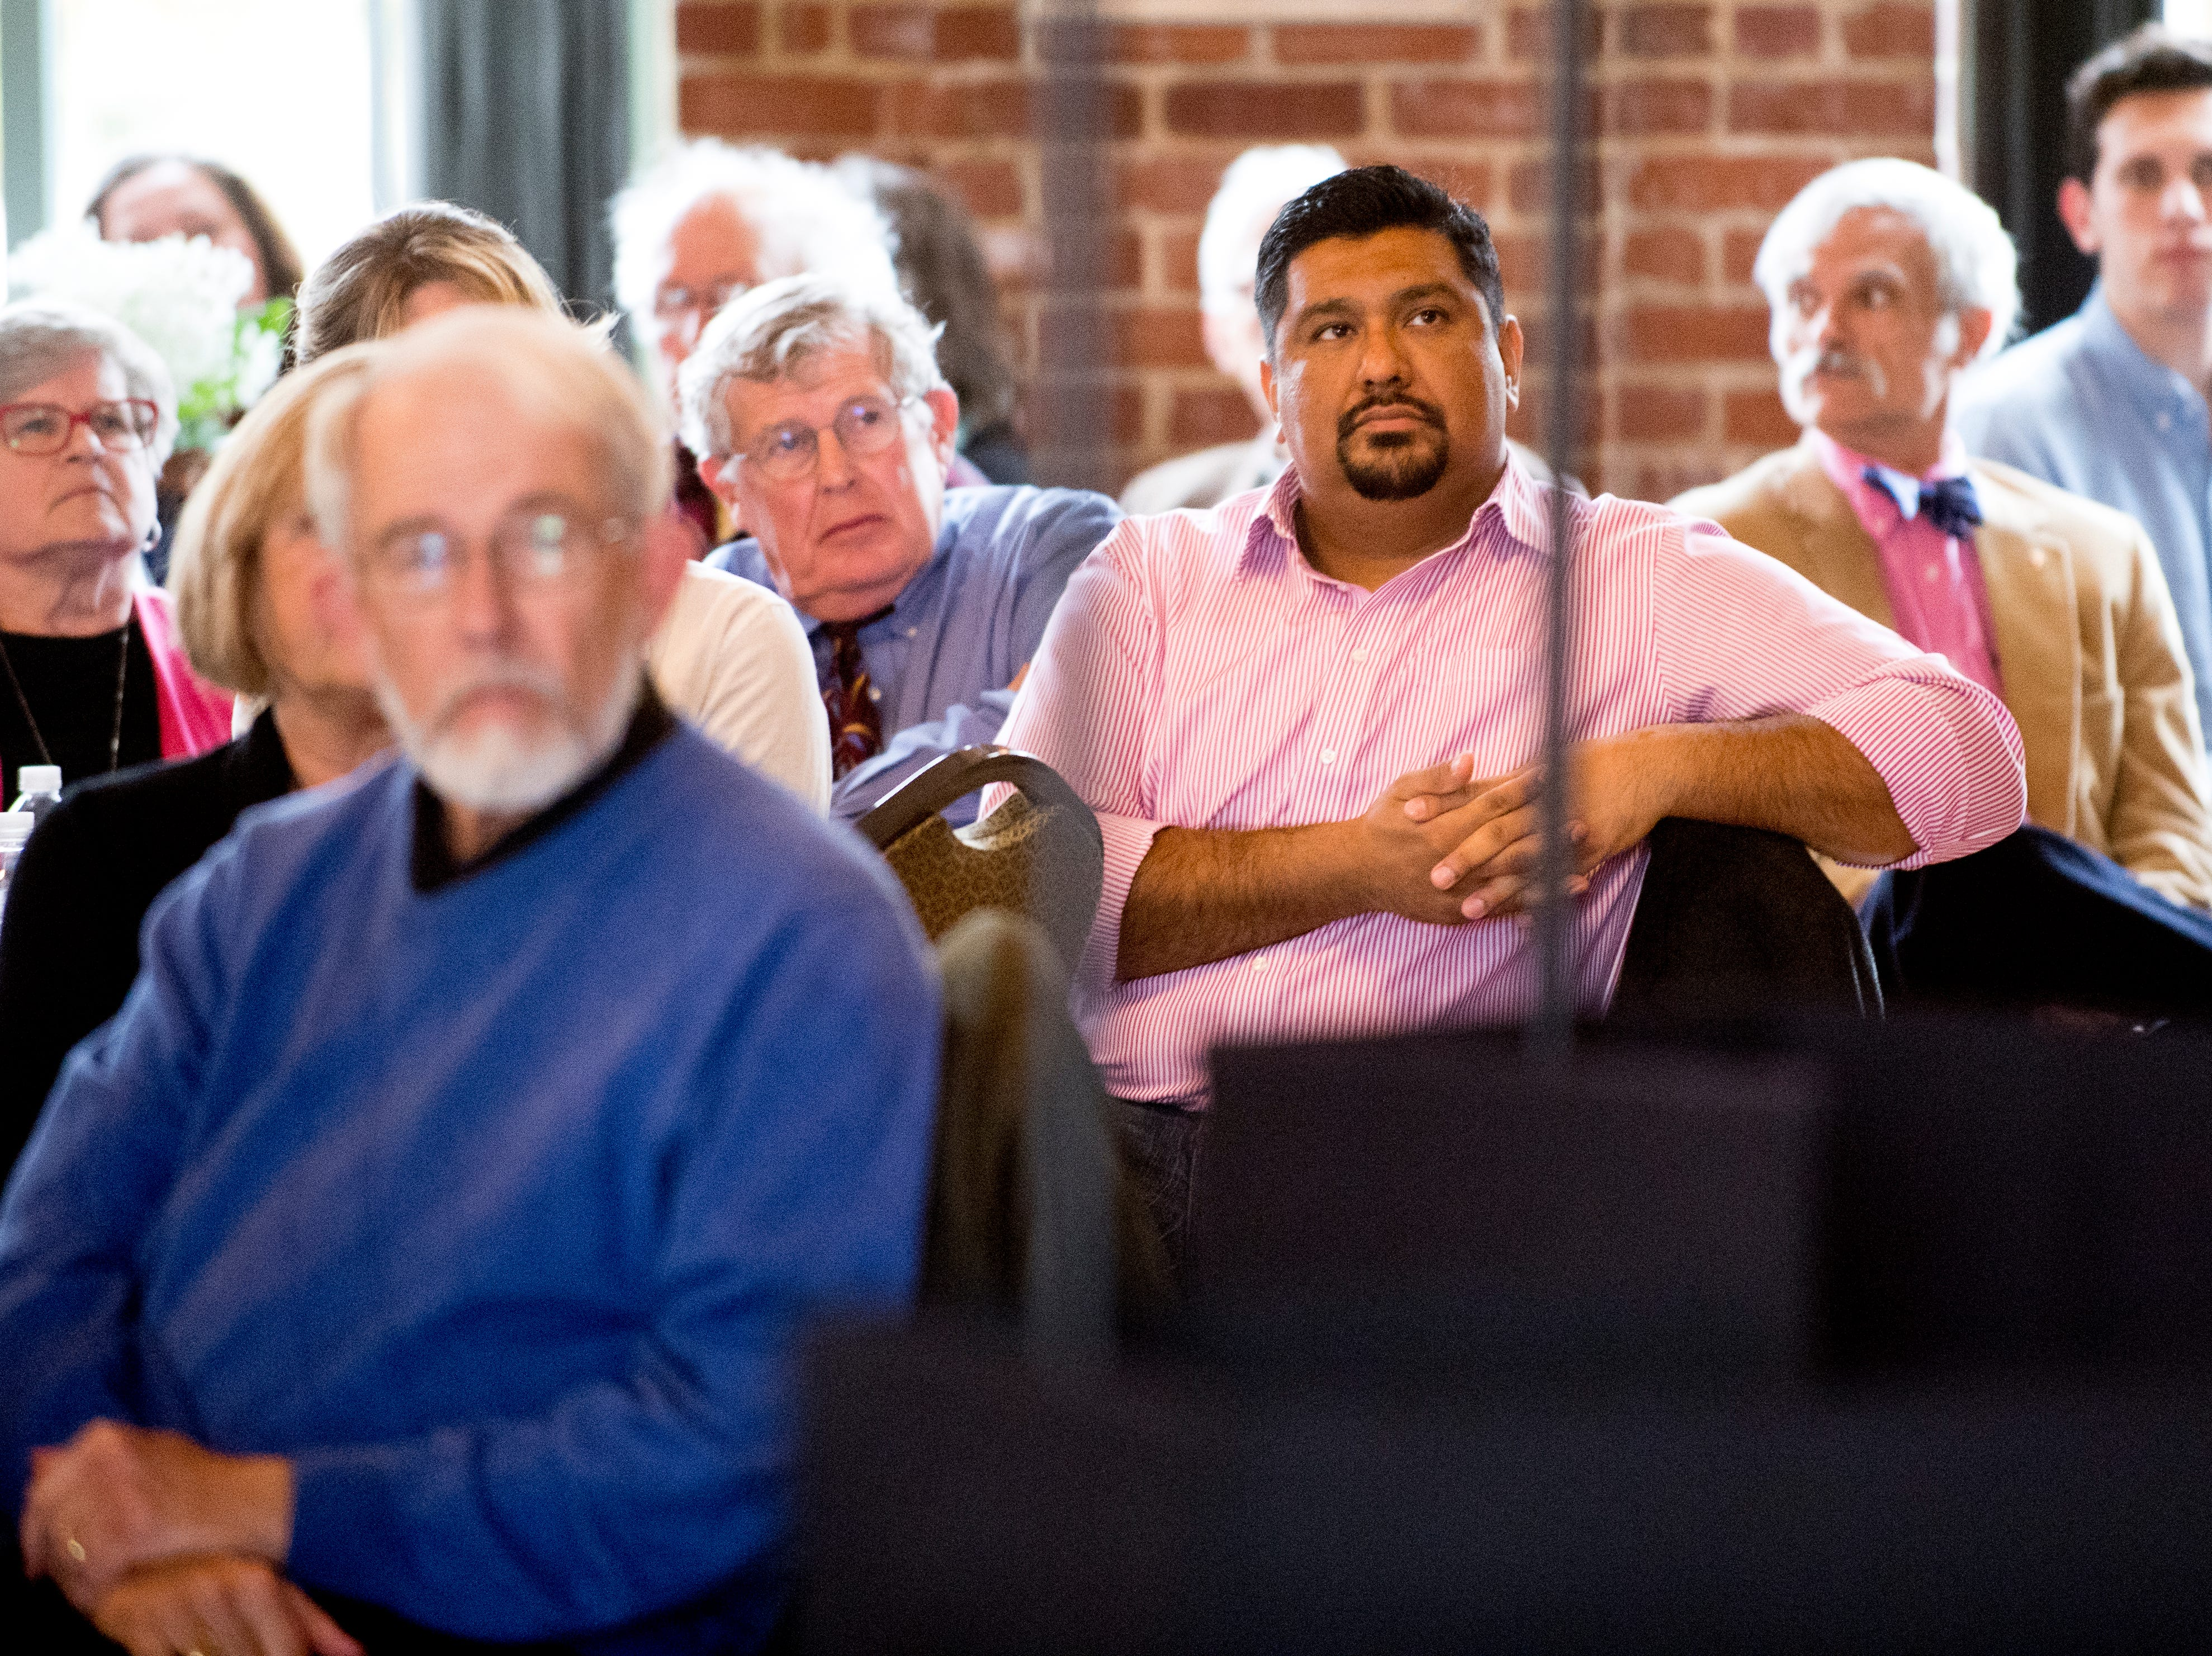 """Attendees listen as former Governor Phil Bredesen speaks during an """"Doing Better Together"""" Interfaith Lunch at the Bessie Smith Cultural Center in Chattanooga, Tennessee on Sunday, November 4, 2018. Former Governor Phil Bredesen, candidate for U.S. Senate, hosted the event to discuss the future of Tennessee and America."""